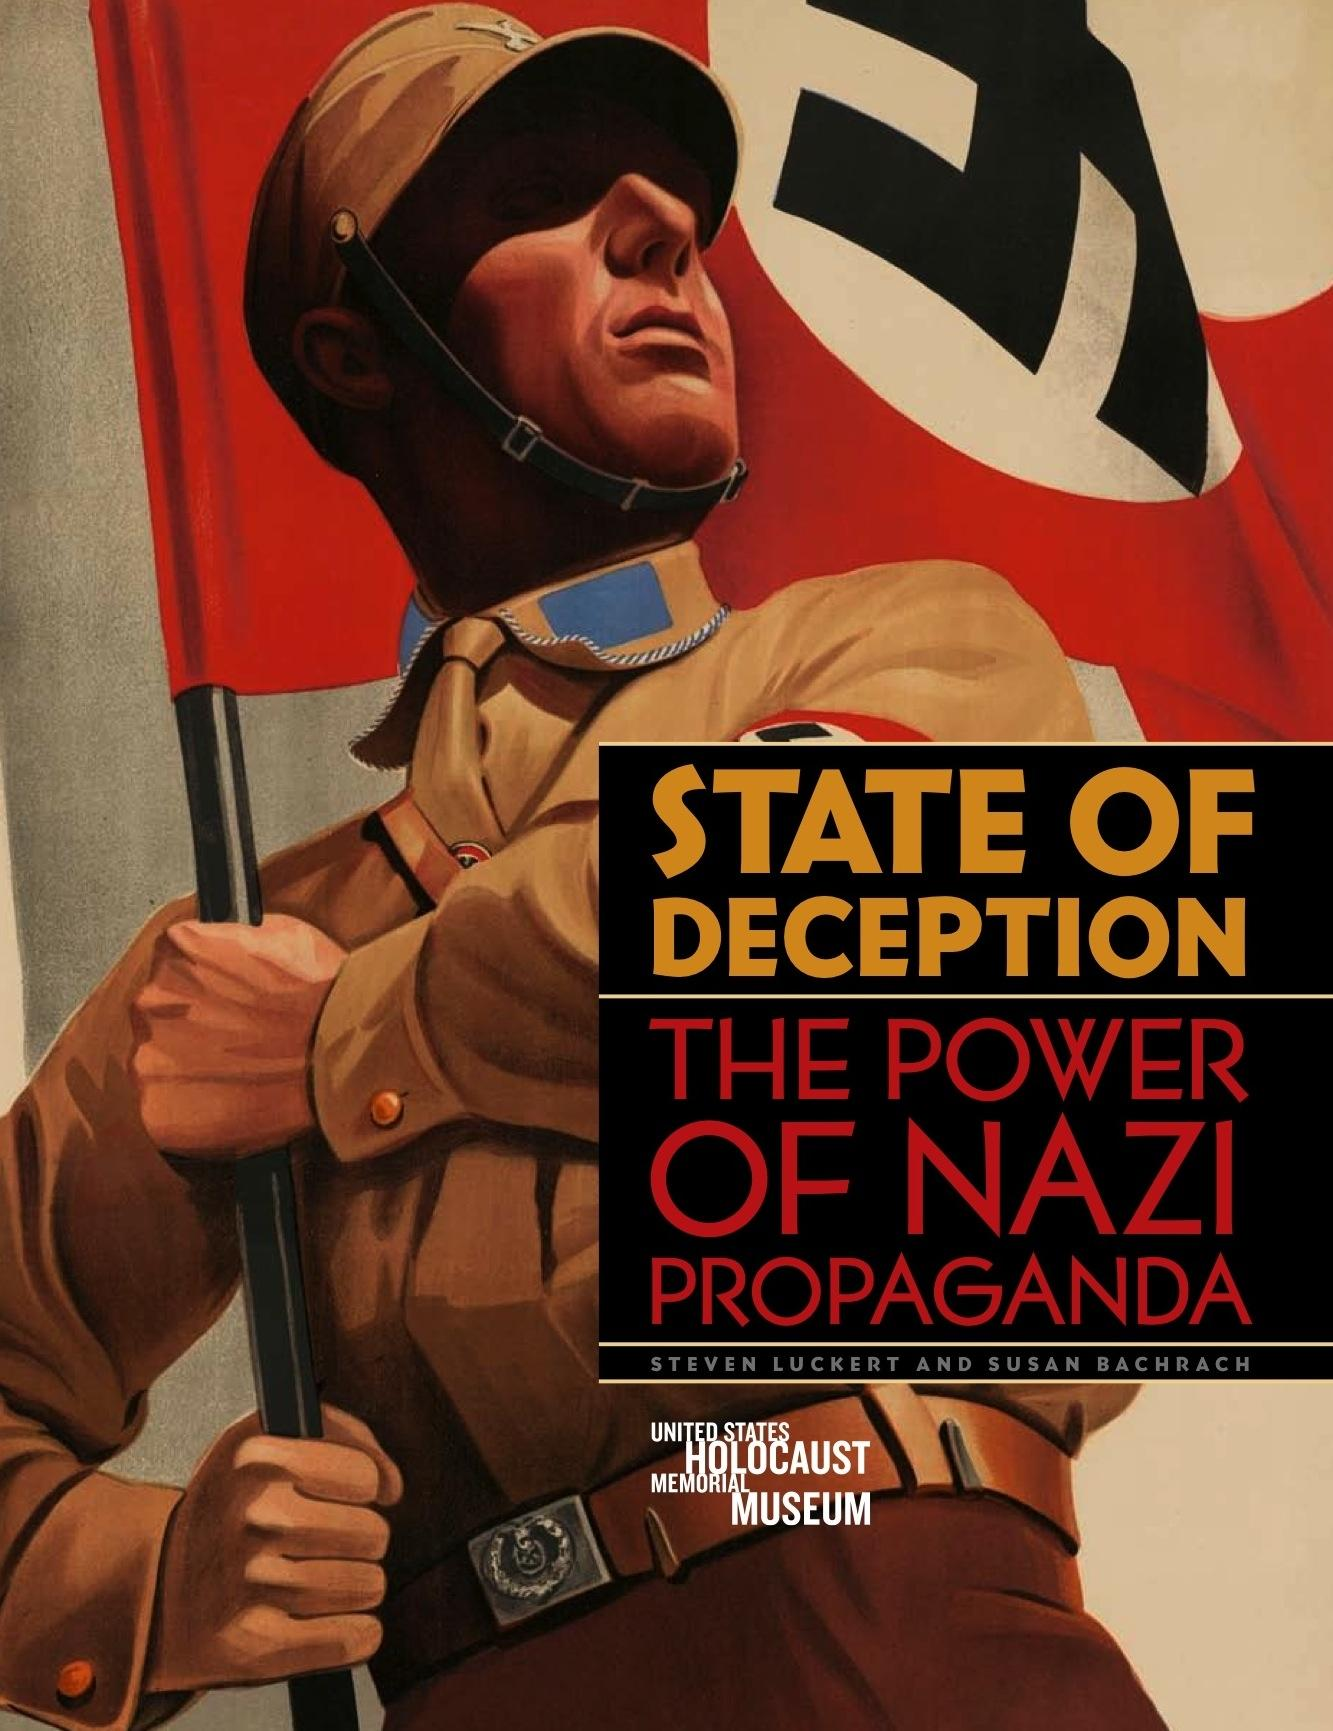 The book cover of <i>State of Deception: The Power of Nazi Propaganda</i> by Museum curators Steven Luckert and Susan Bachrach. <i>Kunstbibliothek Berlin/BPK, Berlin/Art Resource, New York</i>